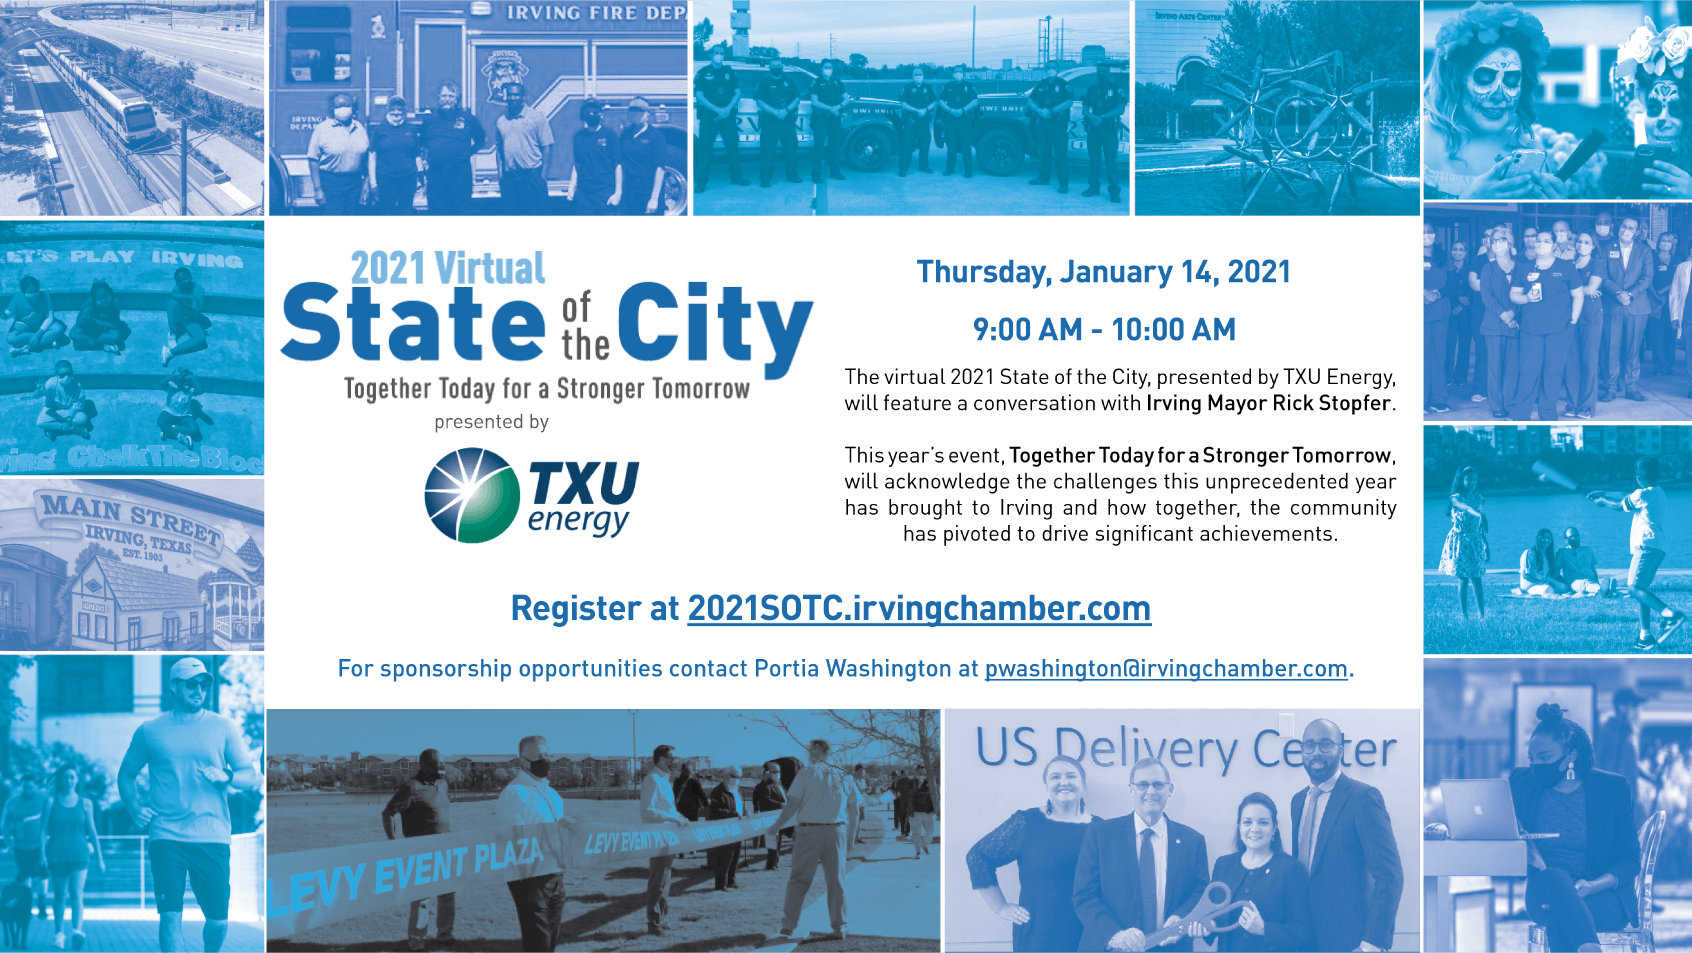 2021 Virtual State of the City Flyer